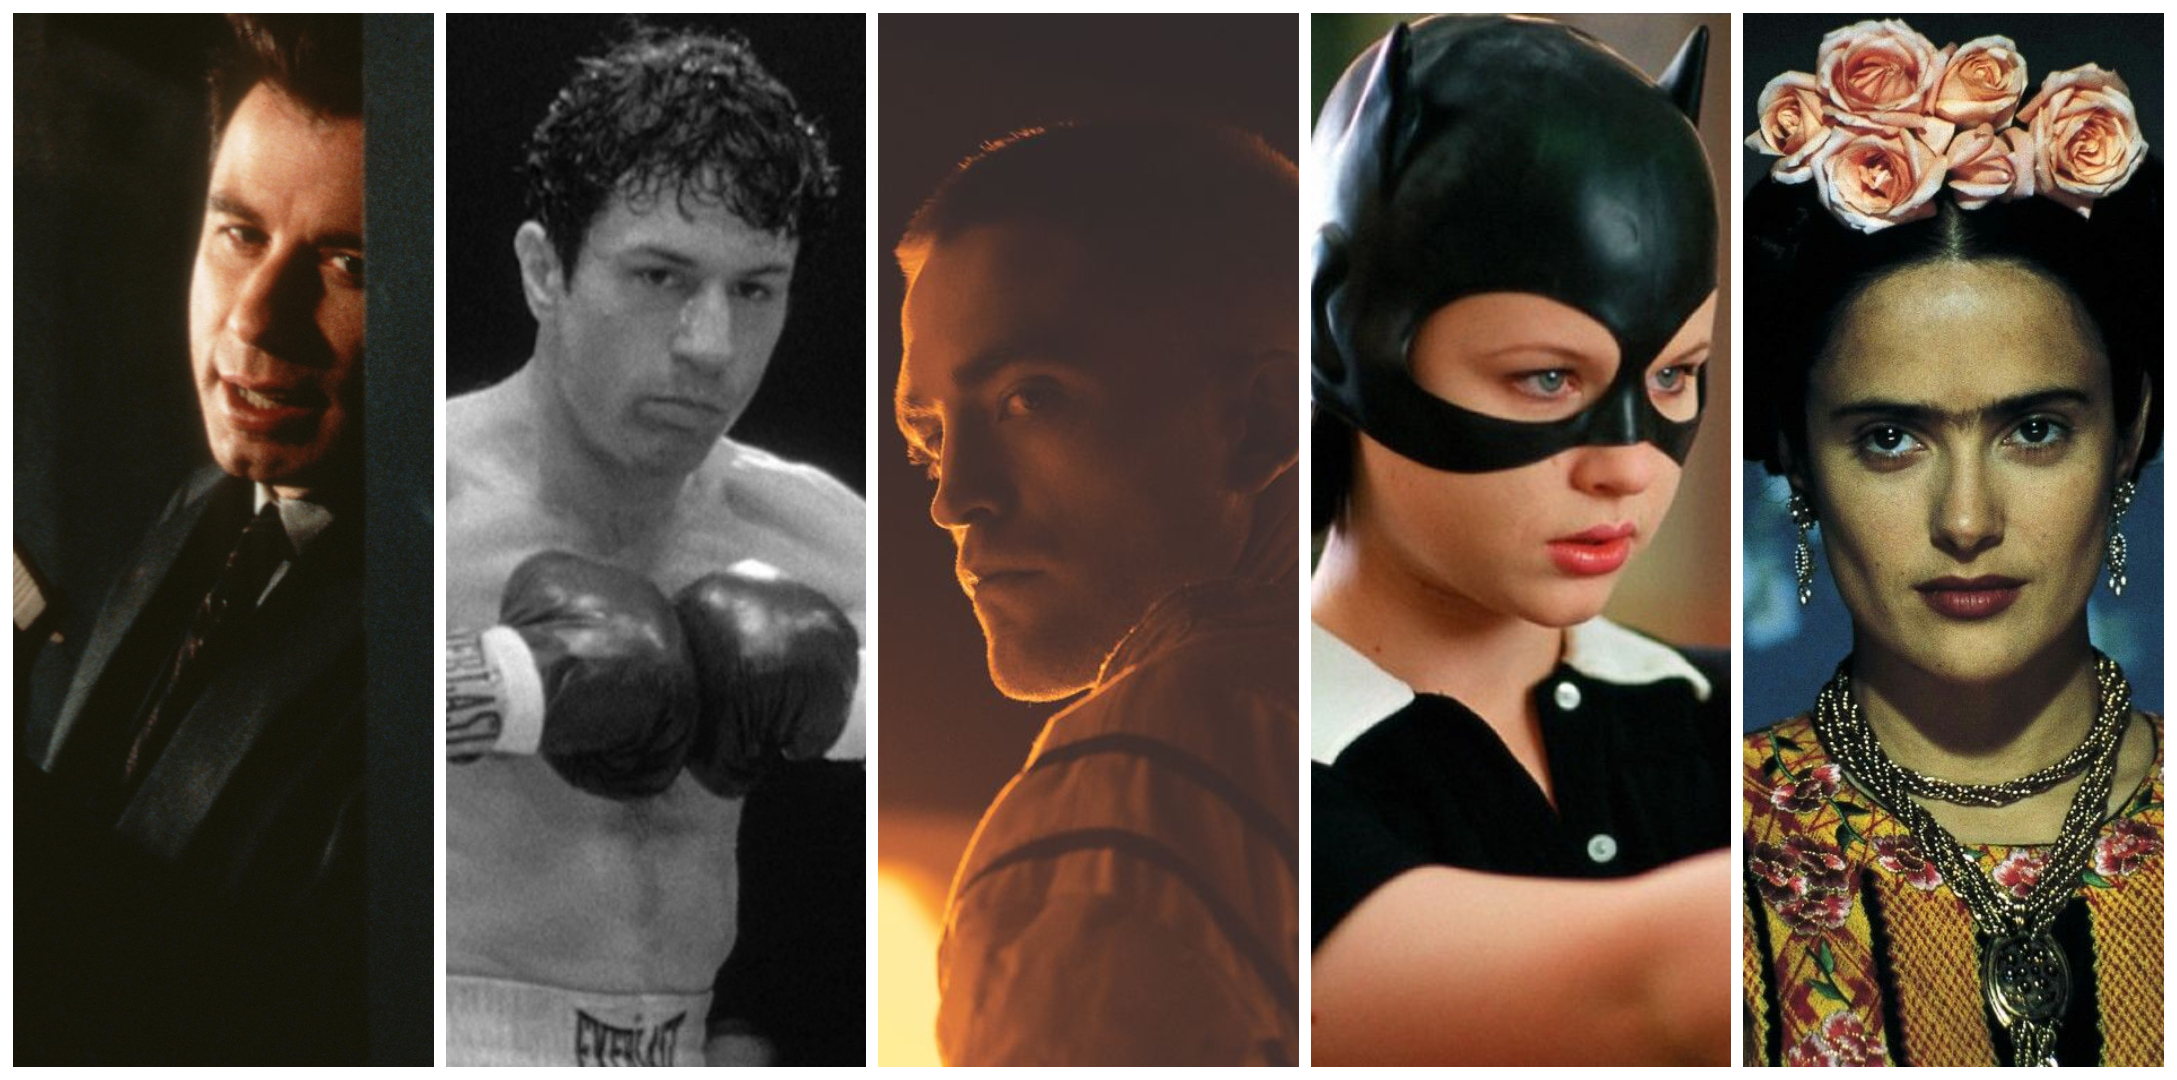 Now Stream This: 'Raging Bull', 'High Life', 'Face/Off', 'Ghost World', 'Hot Rod', 'Frida', 'Monty Python and the Holy Grail', and More